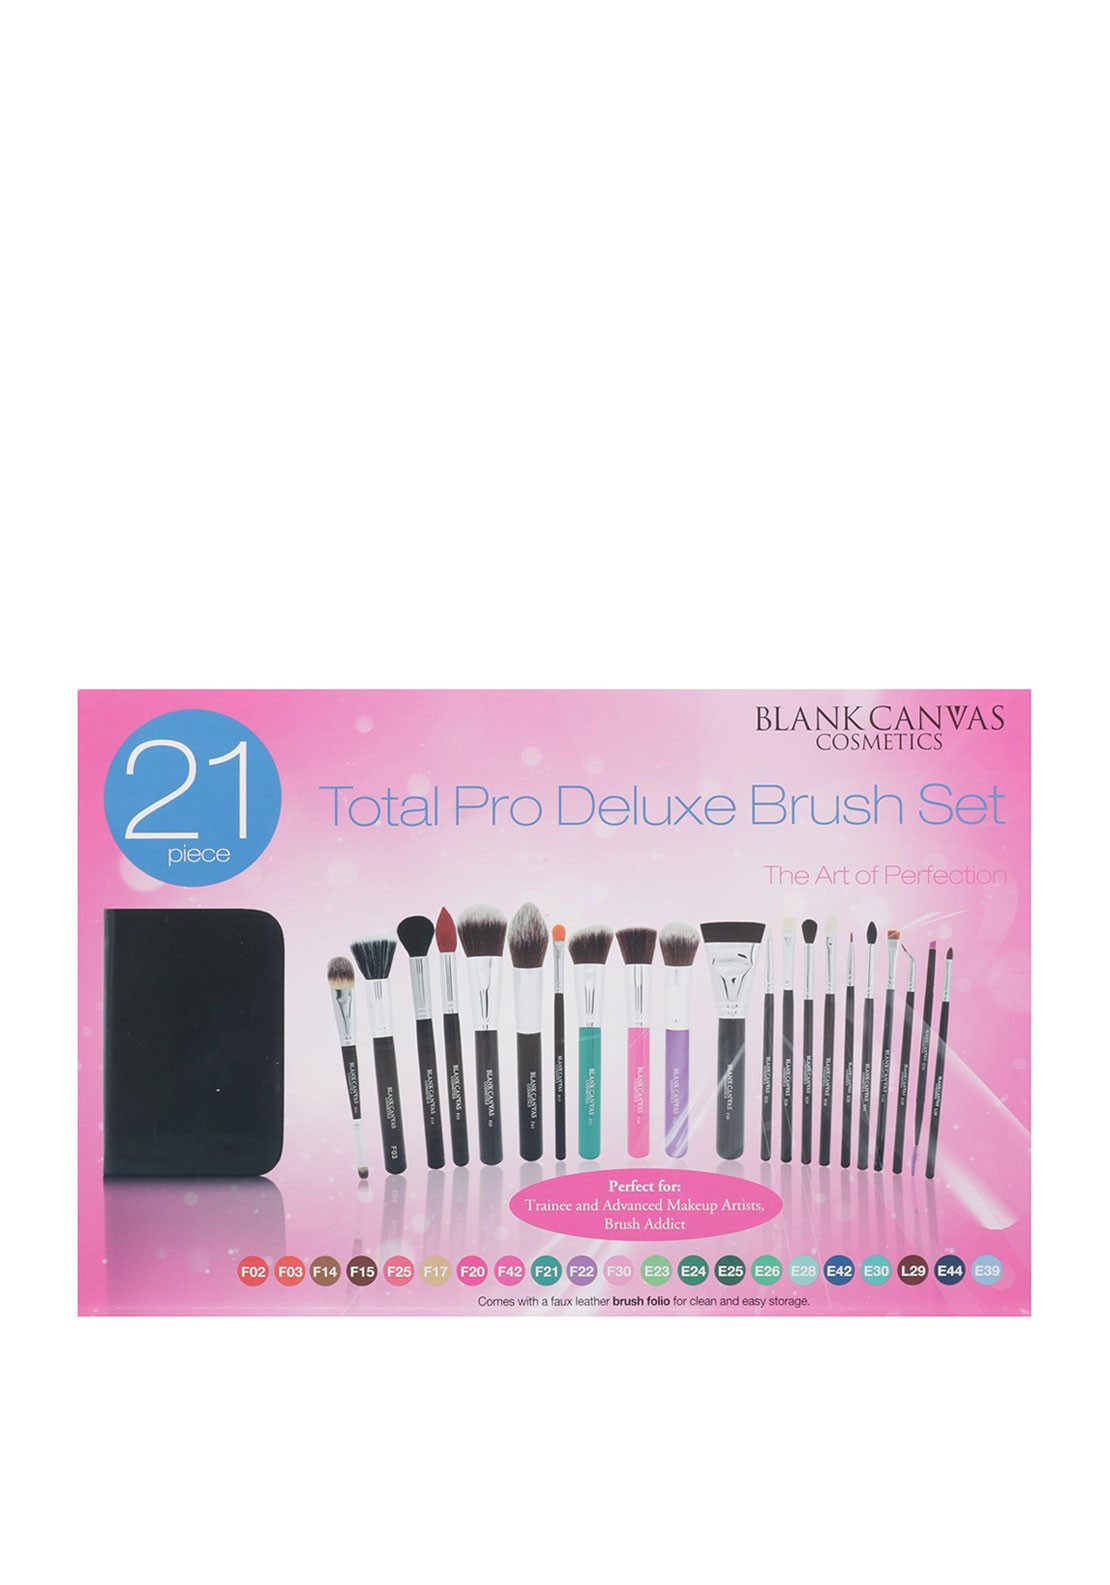 Blank Canvas 21 Piece Total Pro Deluxe Brush Set